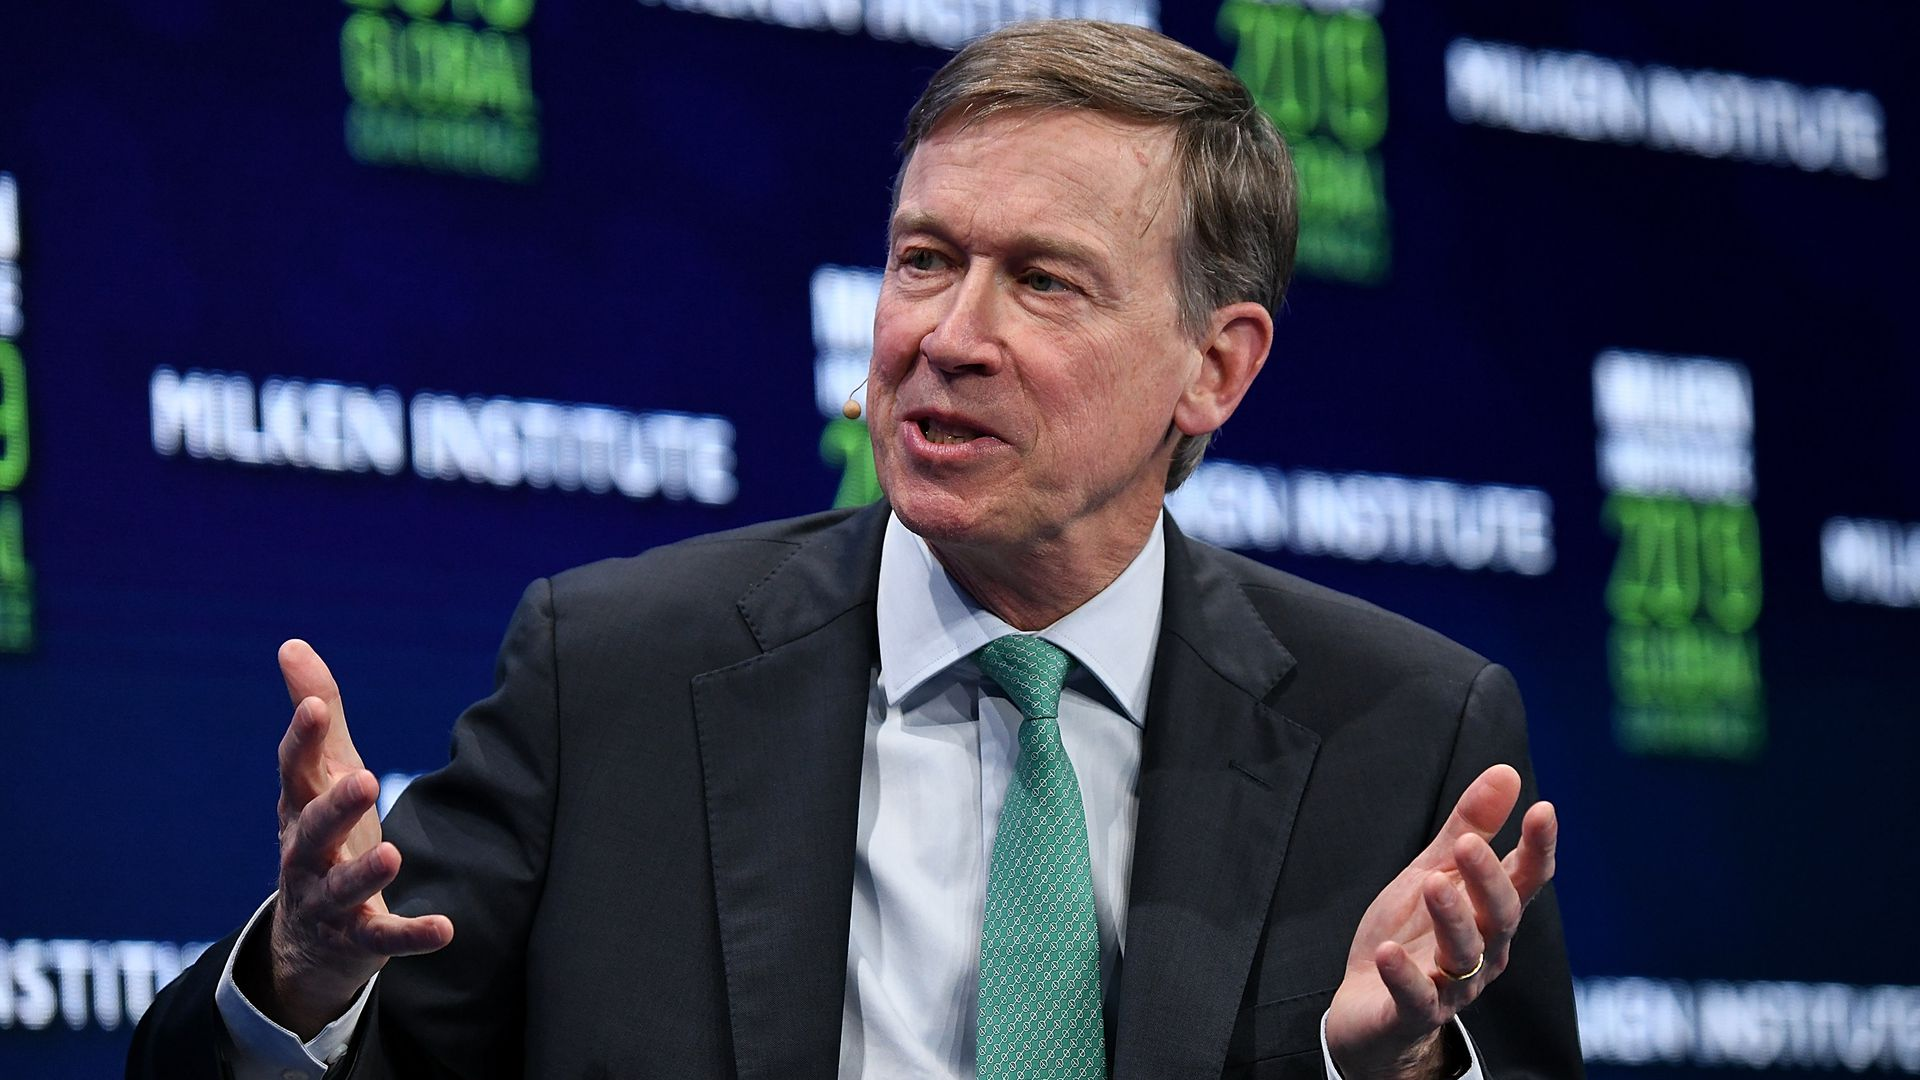 John Hickenlooper gestures during a panel discussion in California.